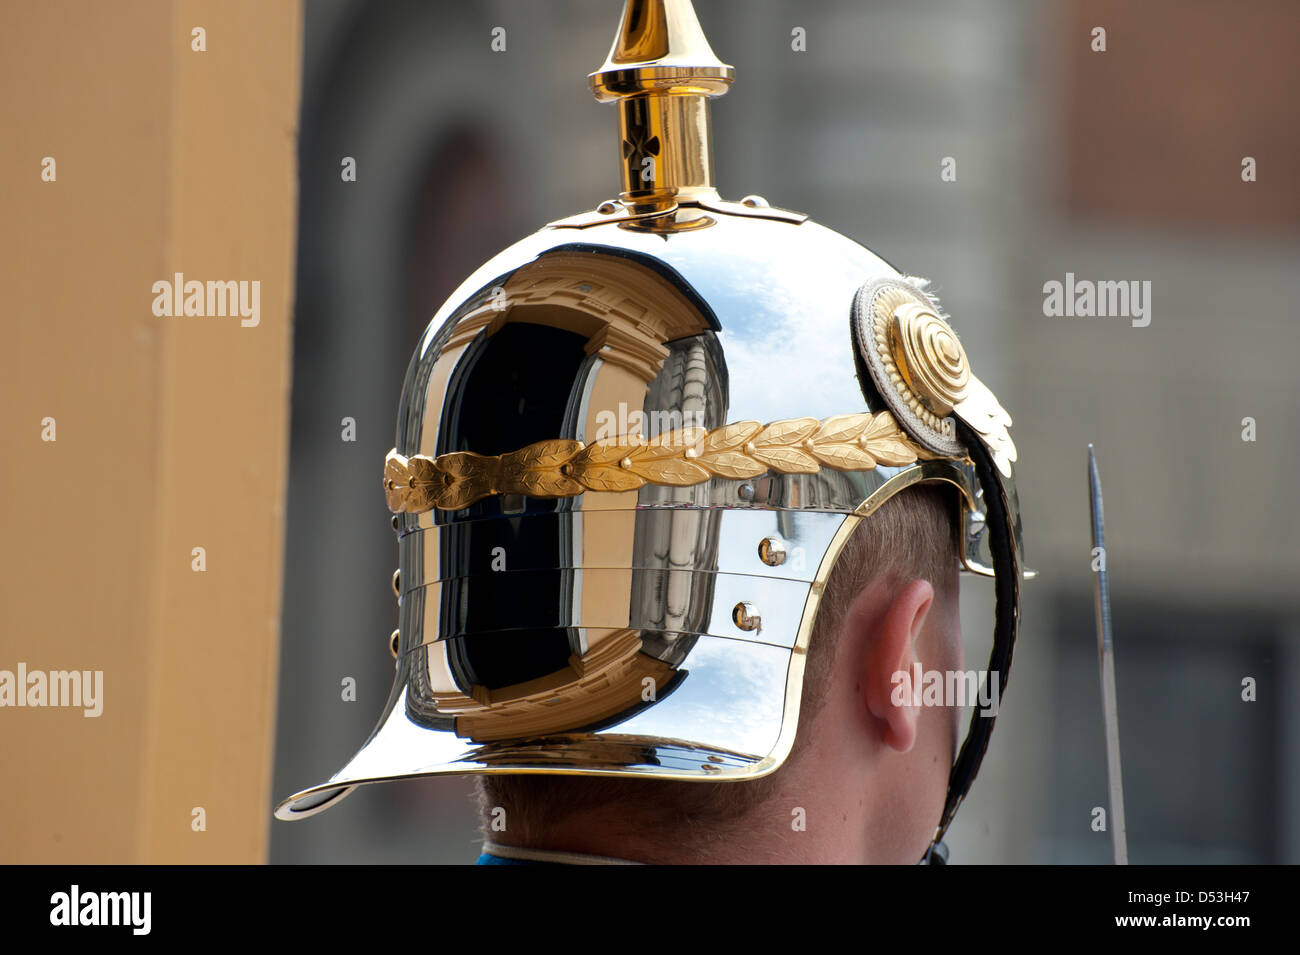 Reflection Of Guard Hut In The Helmet Of The Guard At The Royal